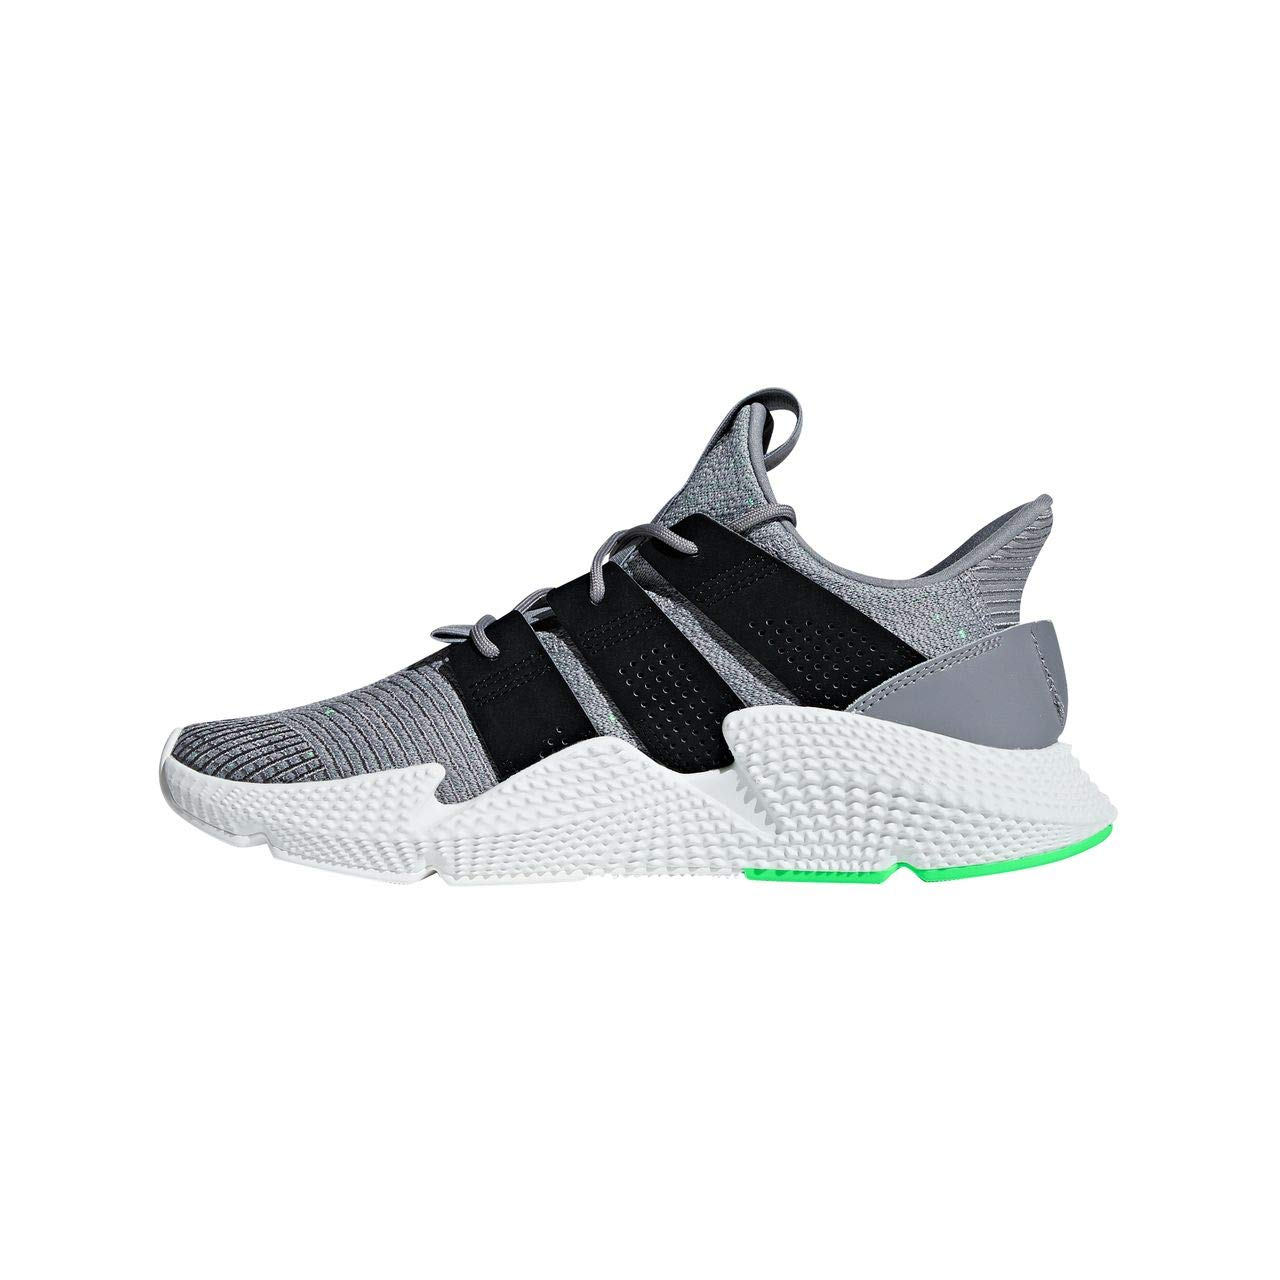 gris (gris Three F17 Core noir Shock Lime) adidas Prophere, Chaussures de Gymnastique Homme 49 1 3 EU